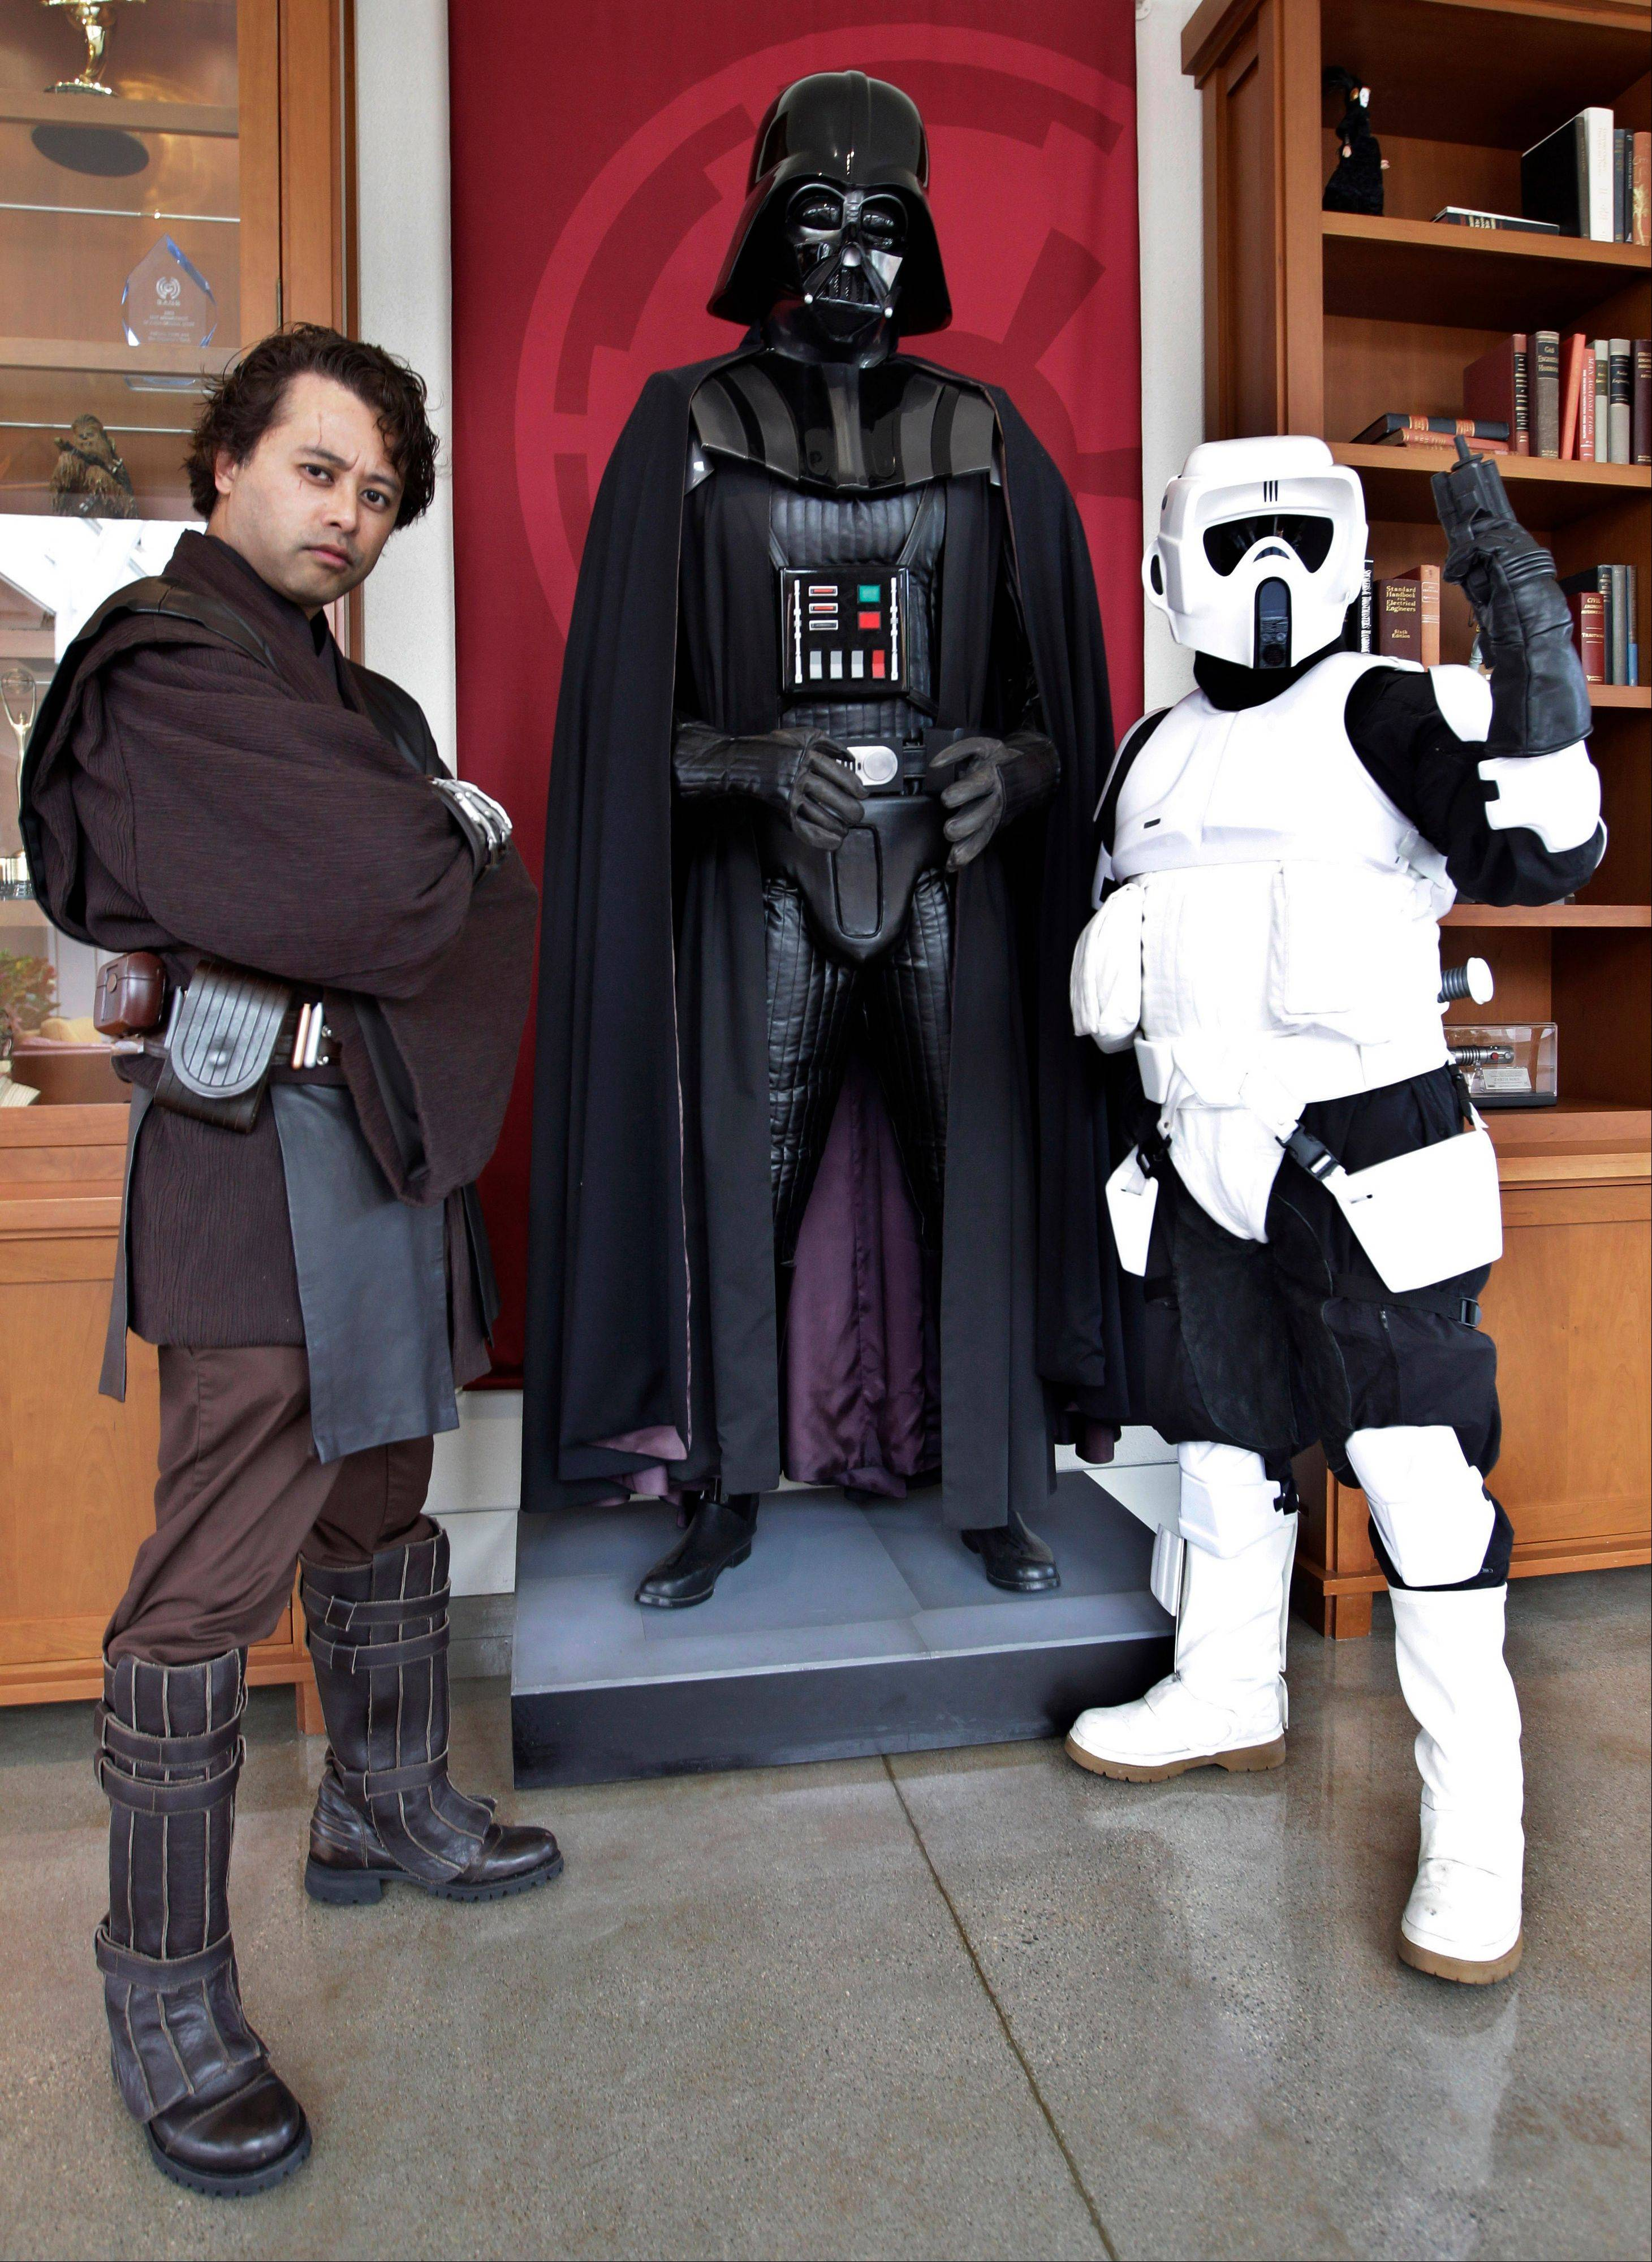 Matt Tolosa, left, wearing an Anakin Skywalker costume, and his brother Dale Tolosa, dressed as a Stormtrooper, pose with a Darth Vader mannequin.